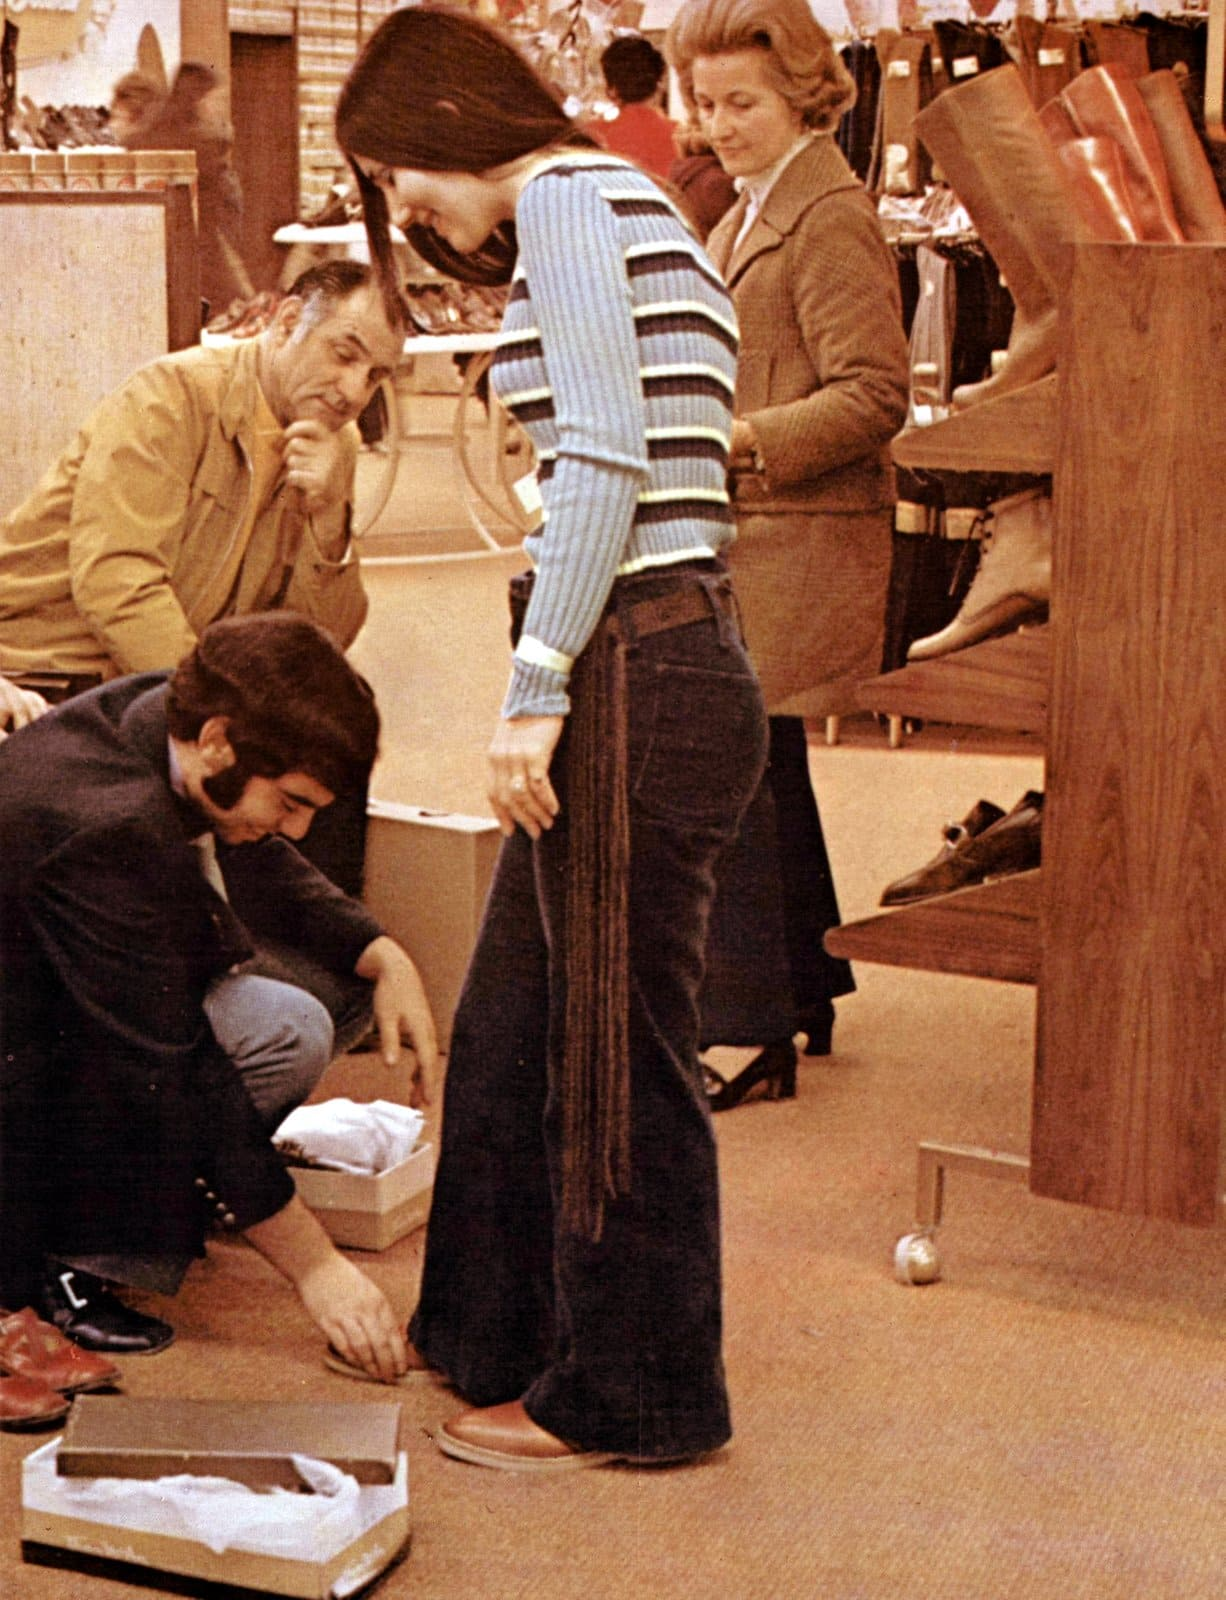 Vintage shoe shopping for a teen girl wearing bell-bottoms (1970)